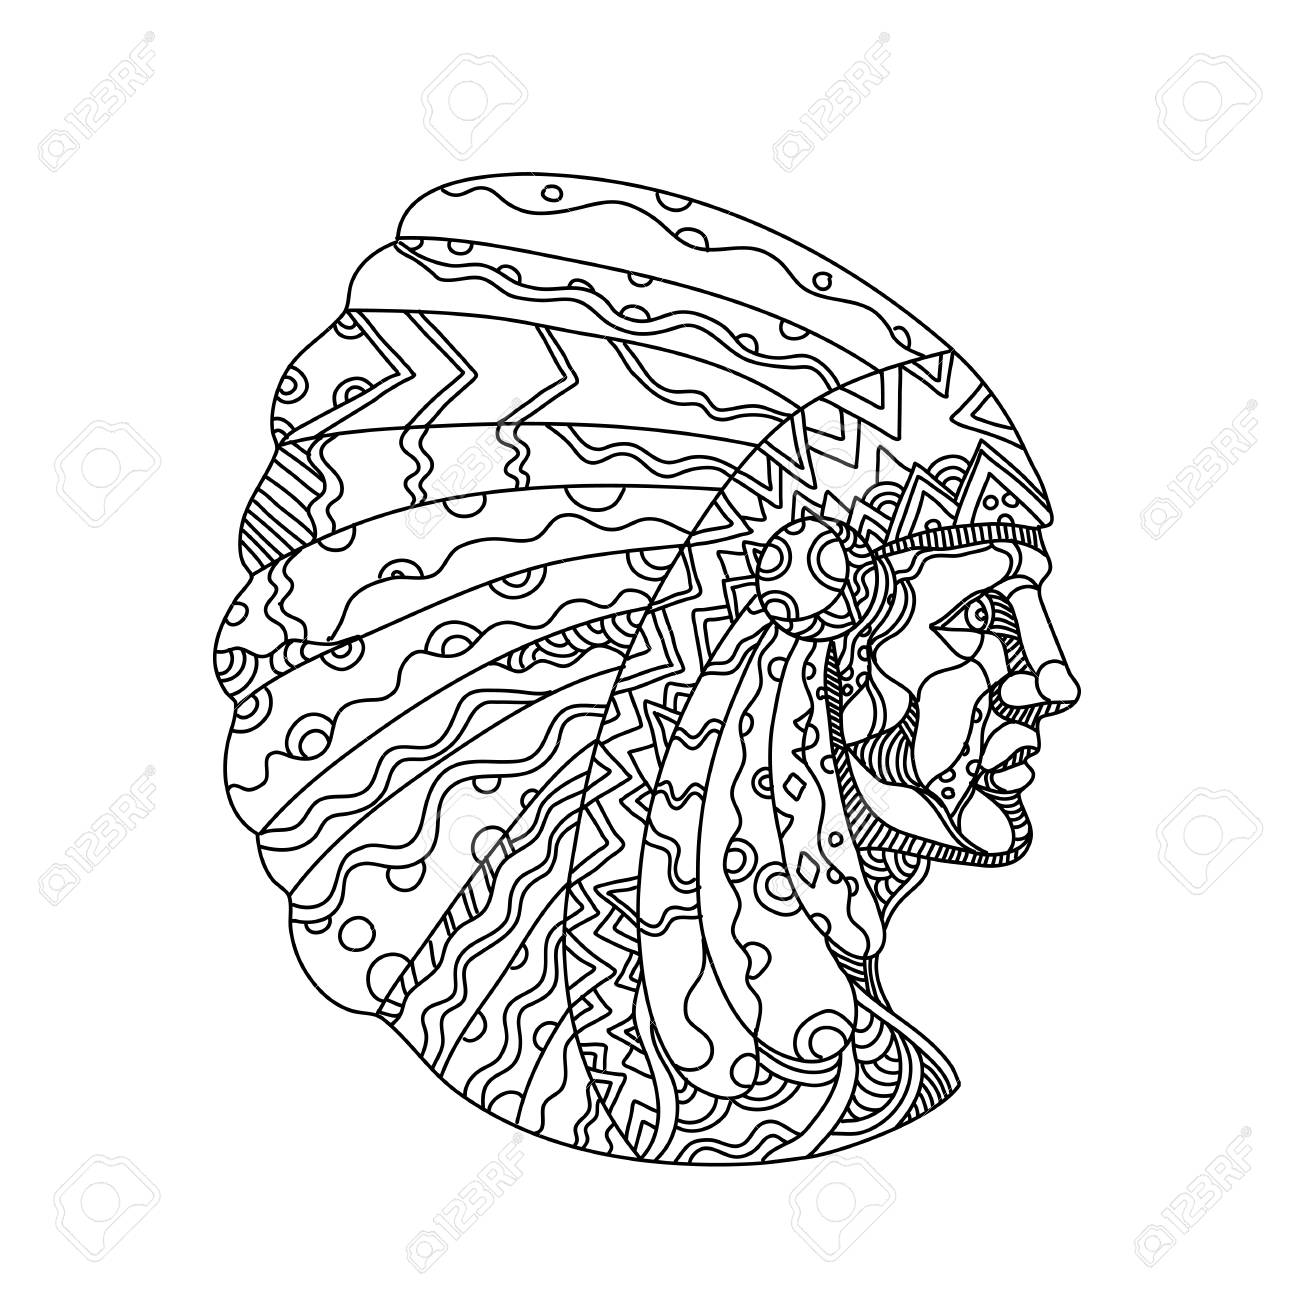 Doodle art illustration of a Native American, American Indian,..